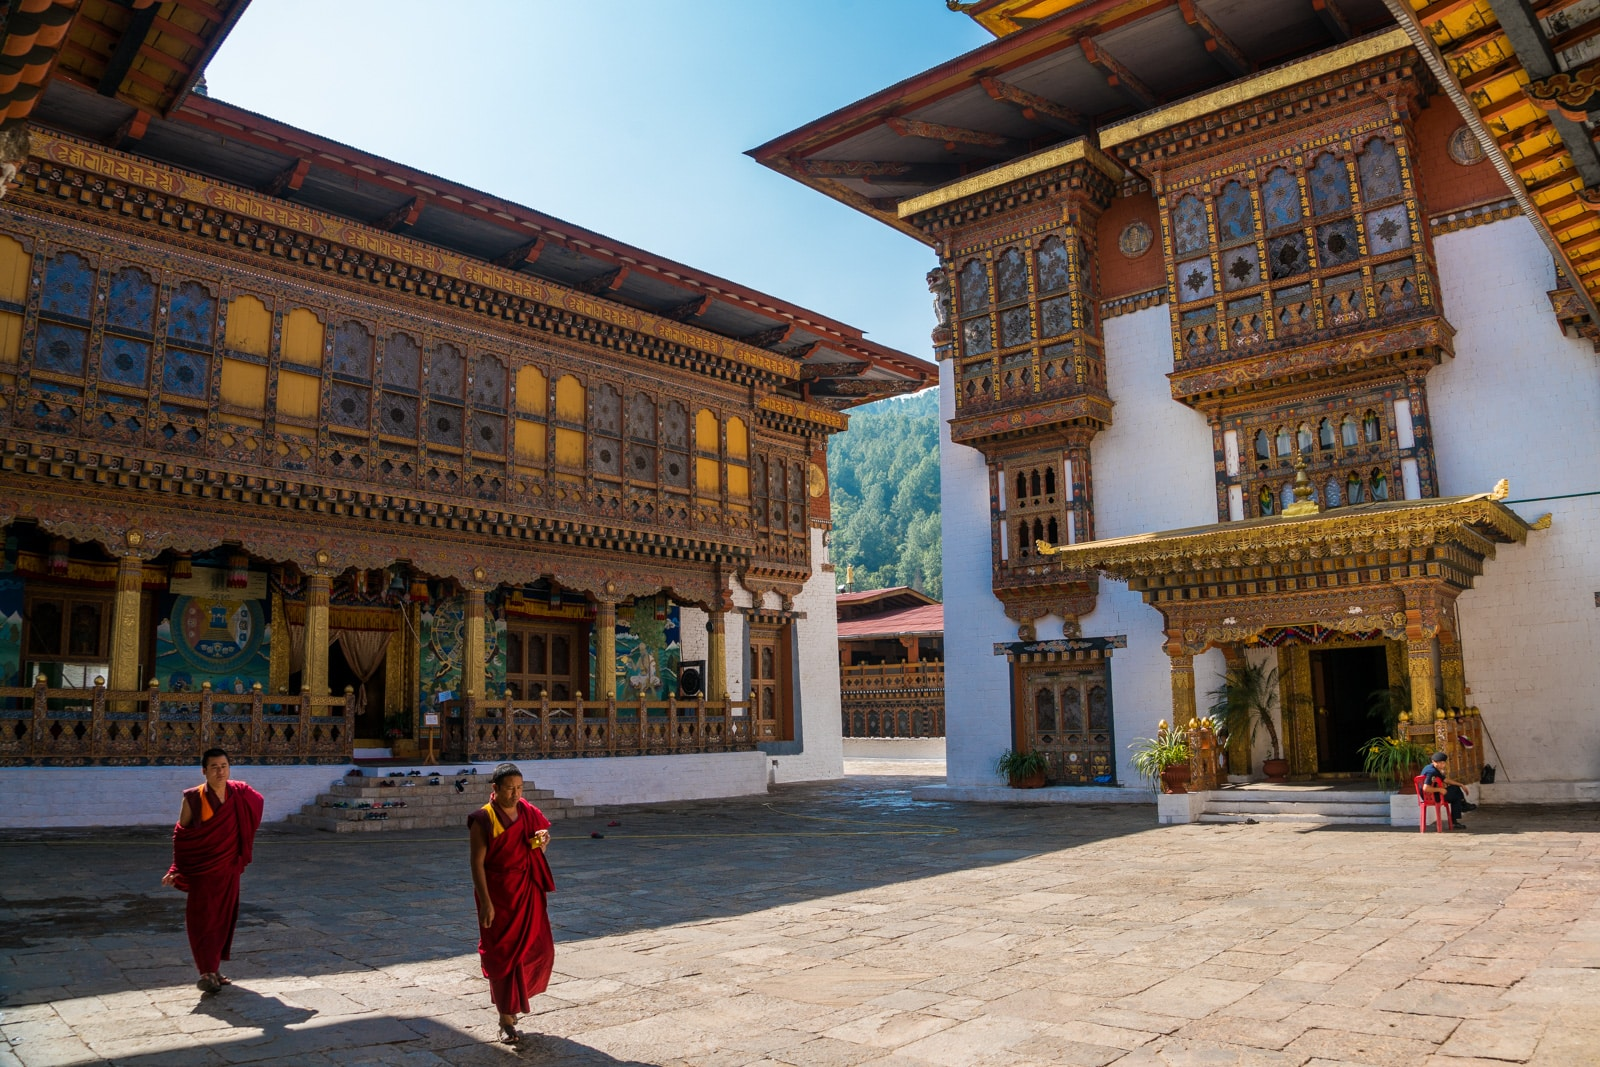 Photos of Bhutan - Monks walking inside Punakha dzong - Lost WIth Purpose travel blog